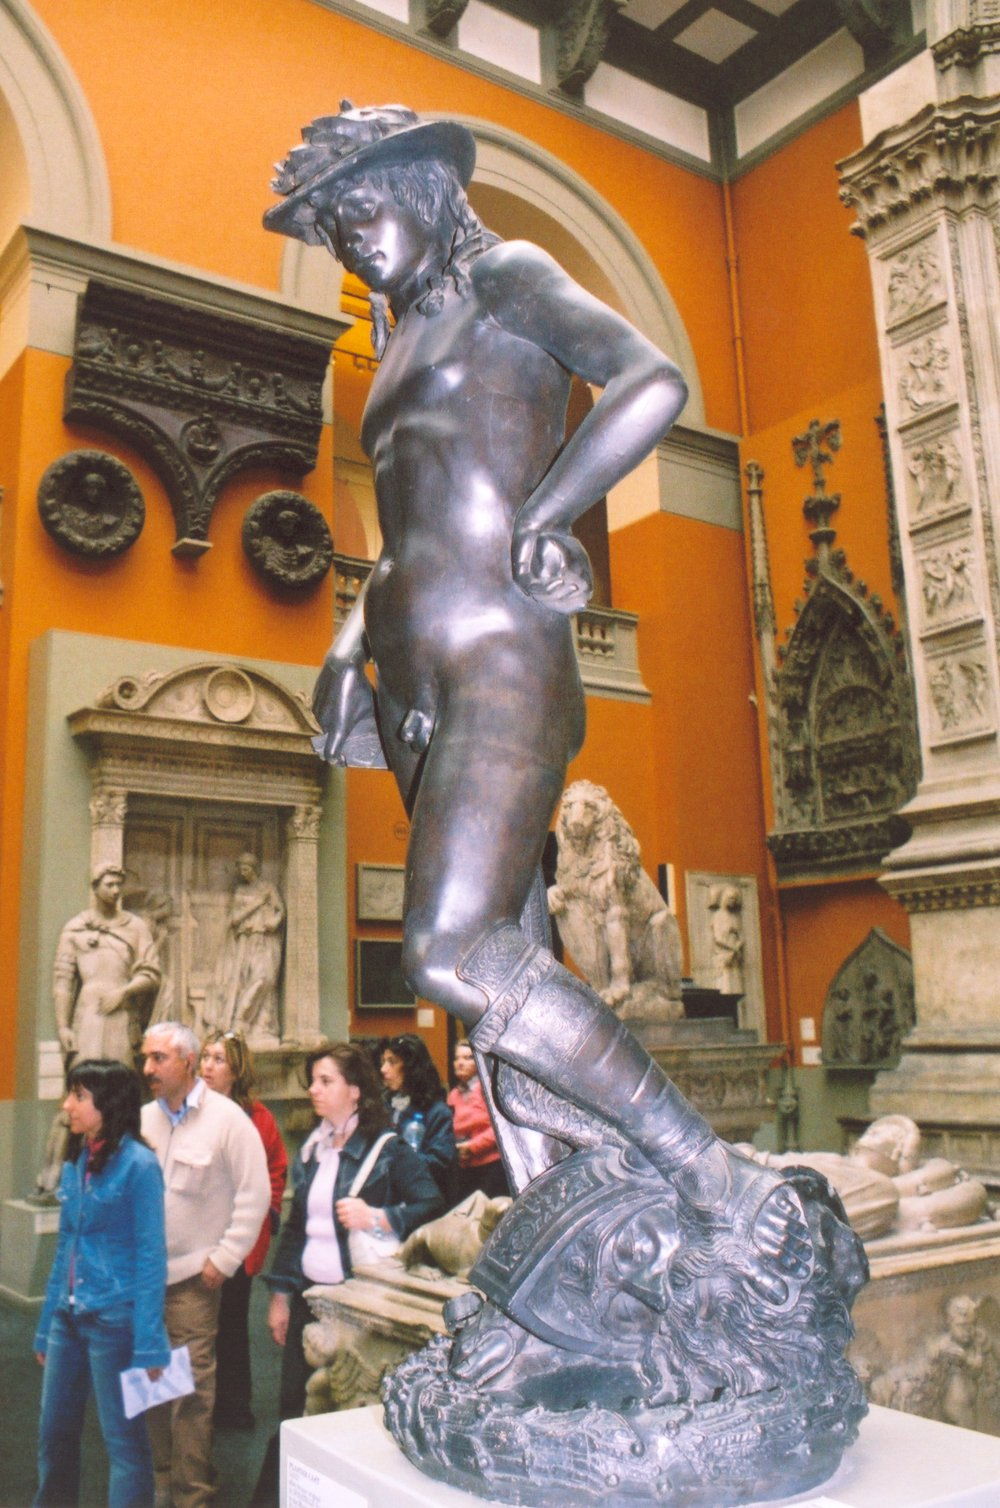 donatellos david Laser technology has revealed that donatello's david, one of the most important statues of the italian renaissance, was once decorated with gold leaf.